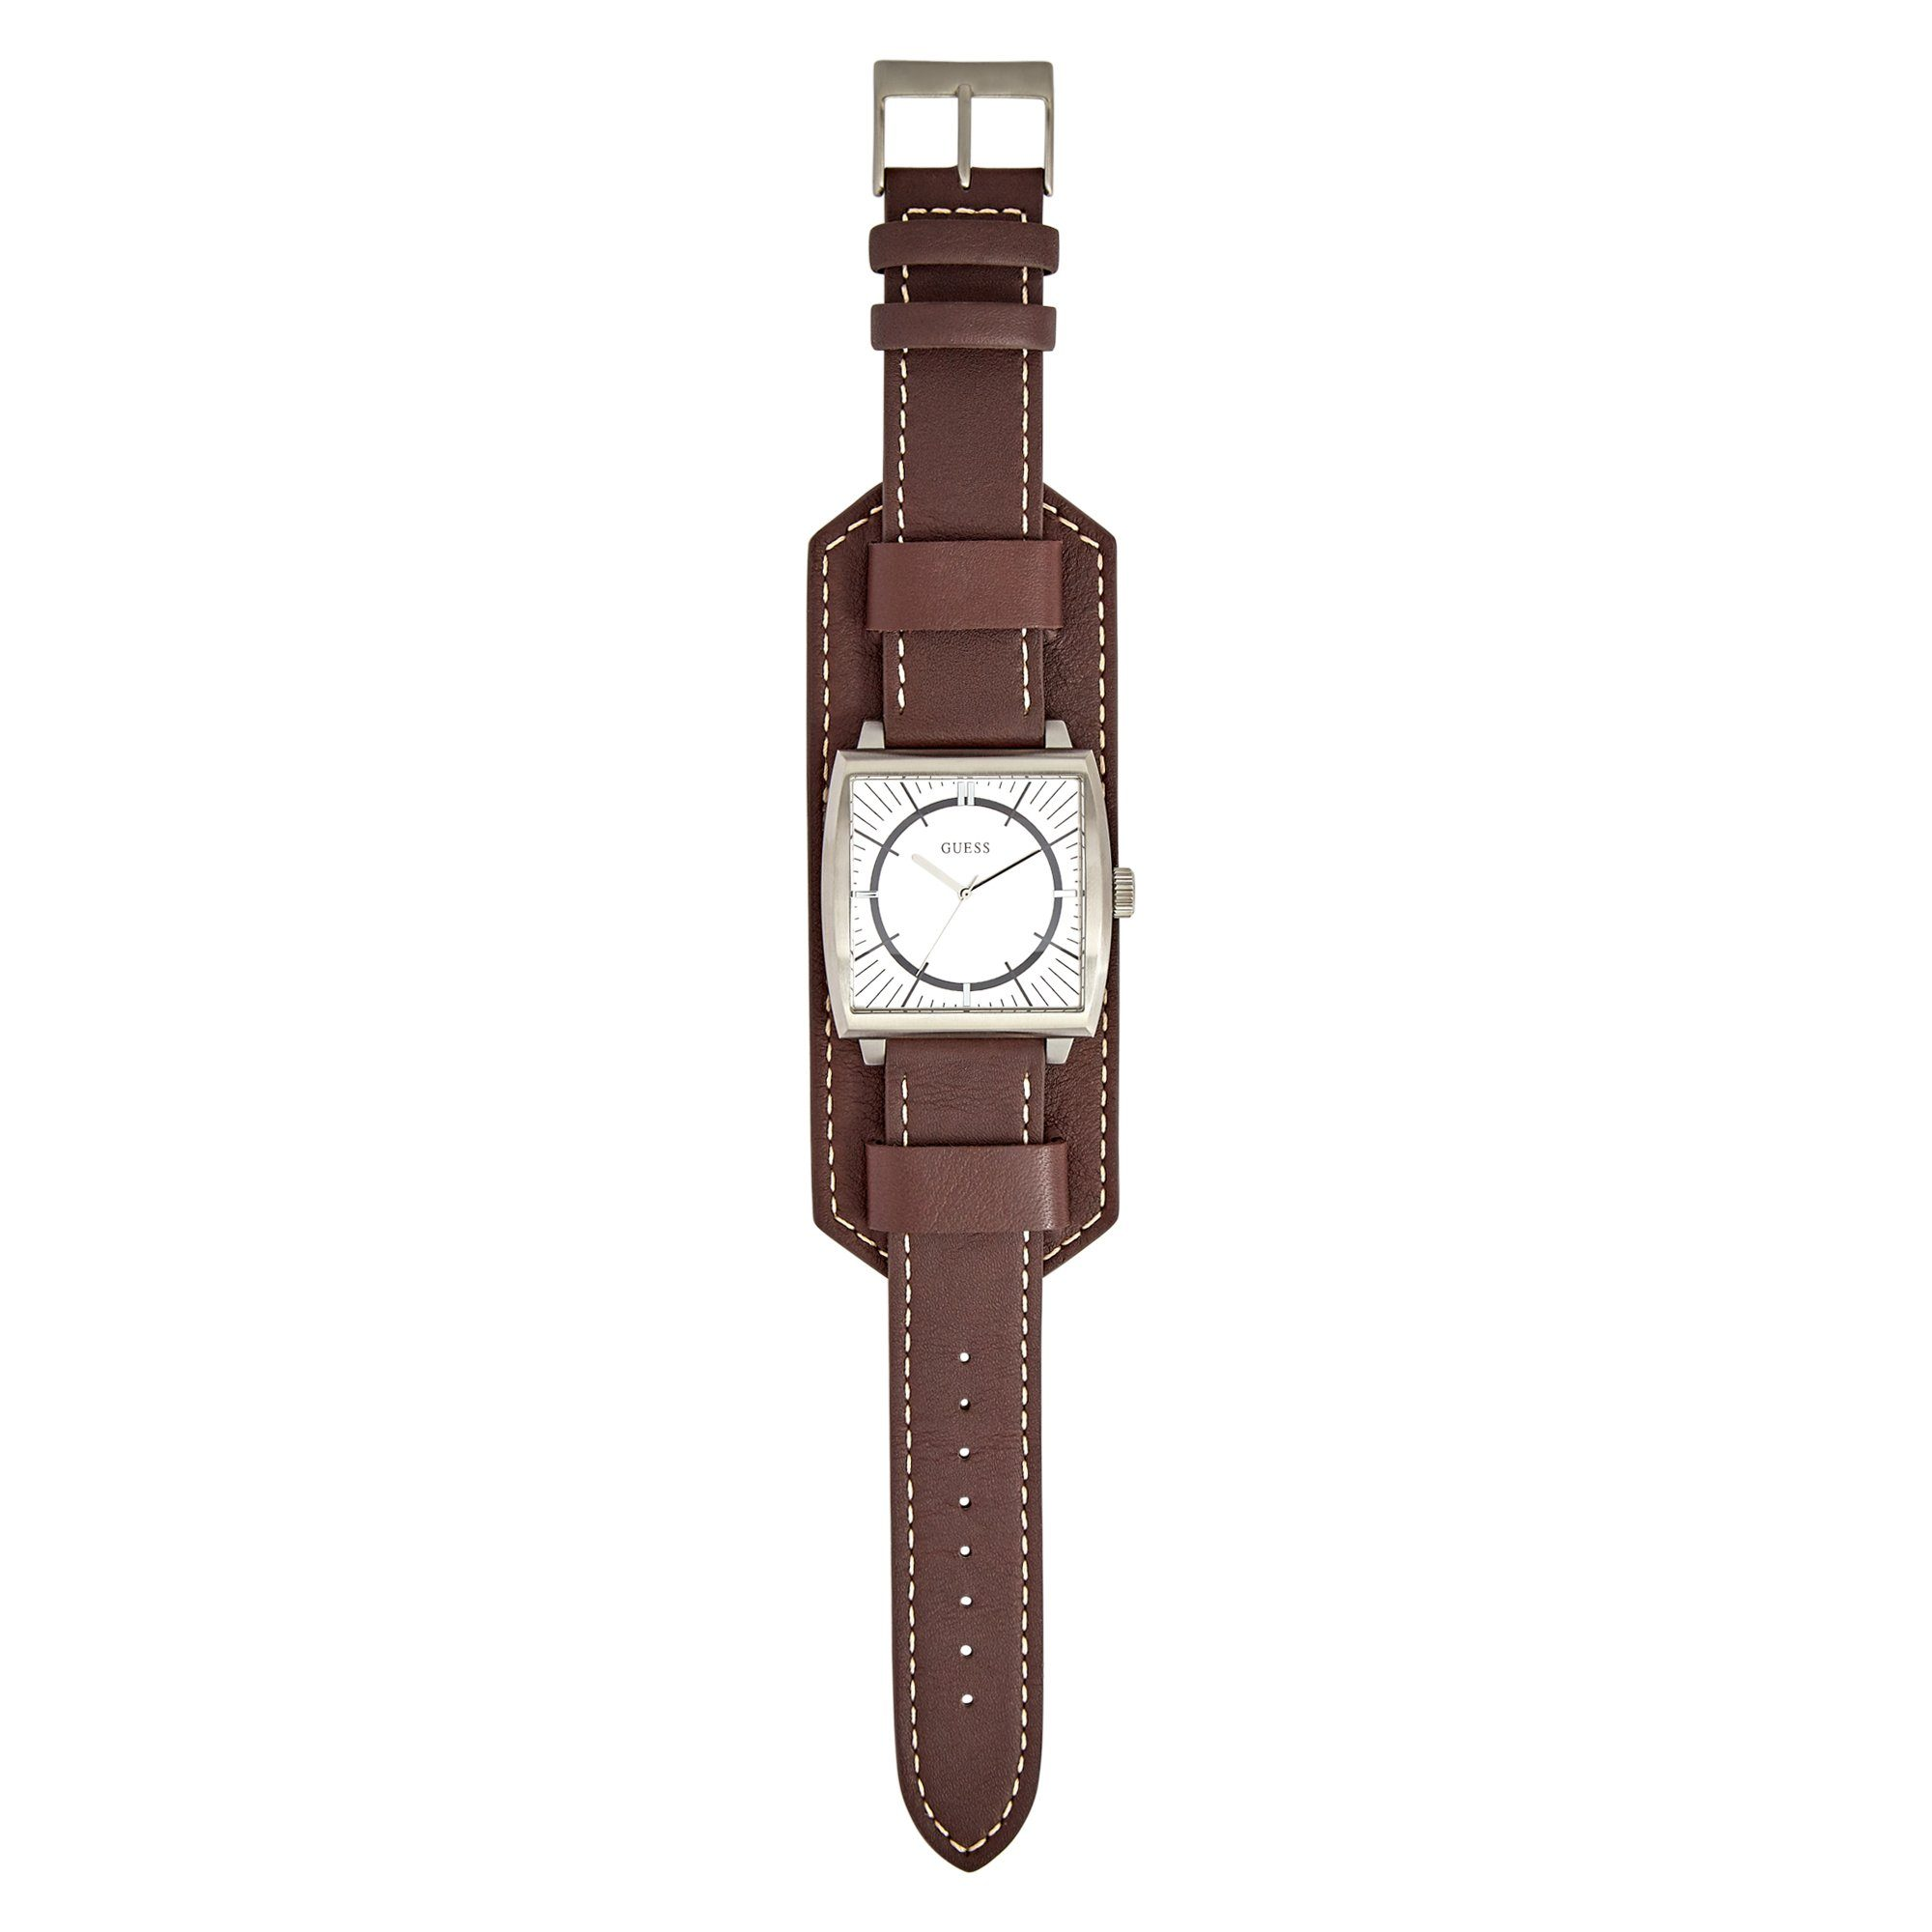 Guess Monarch Silver Brown Leather Cuff Watch Watches Isbister & Co Wholesale